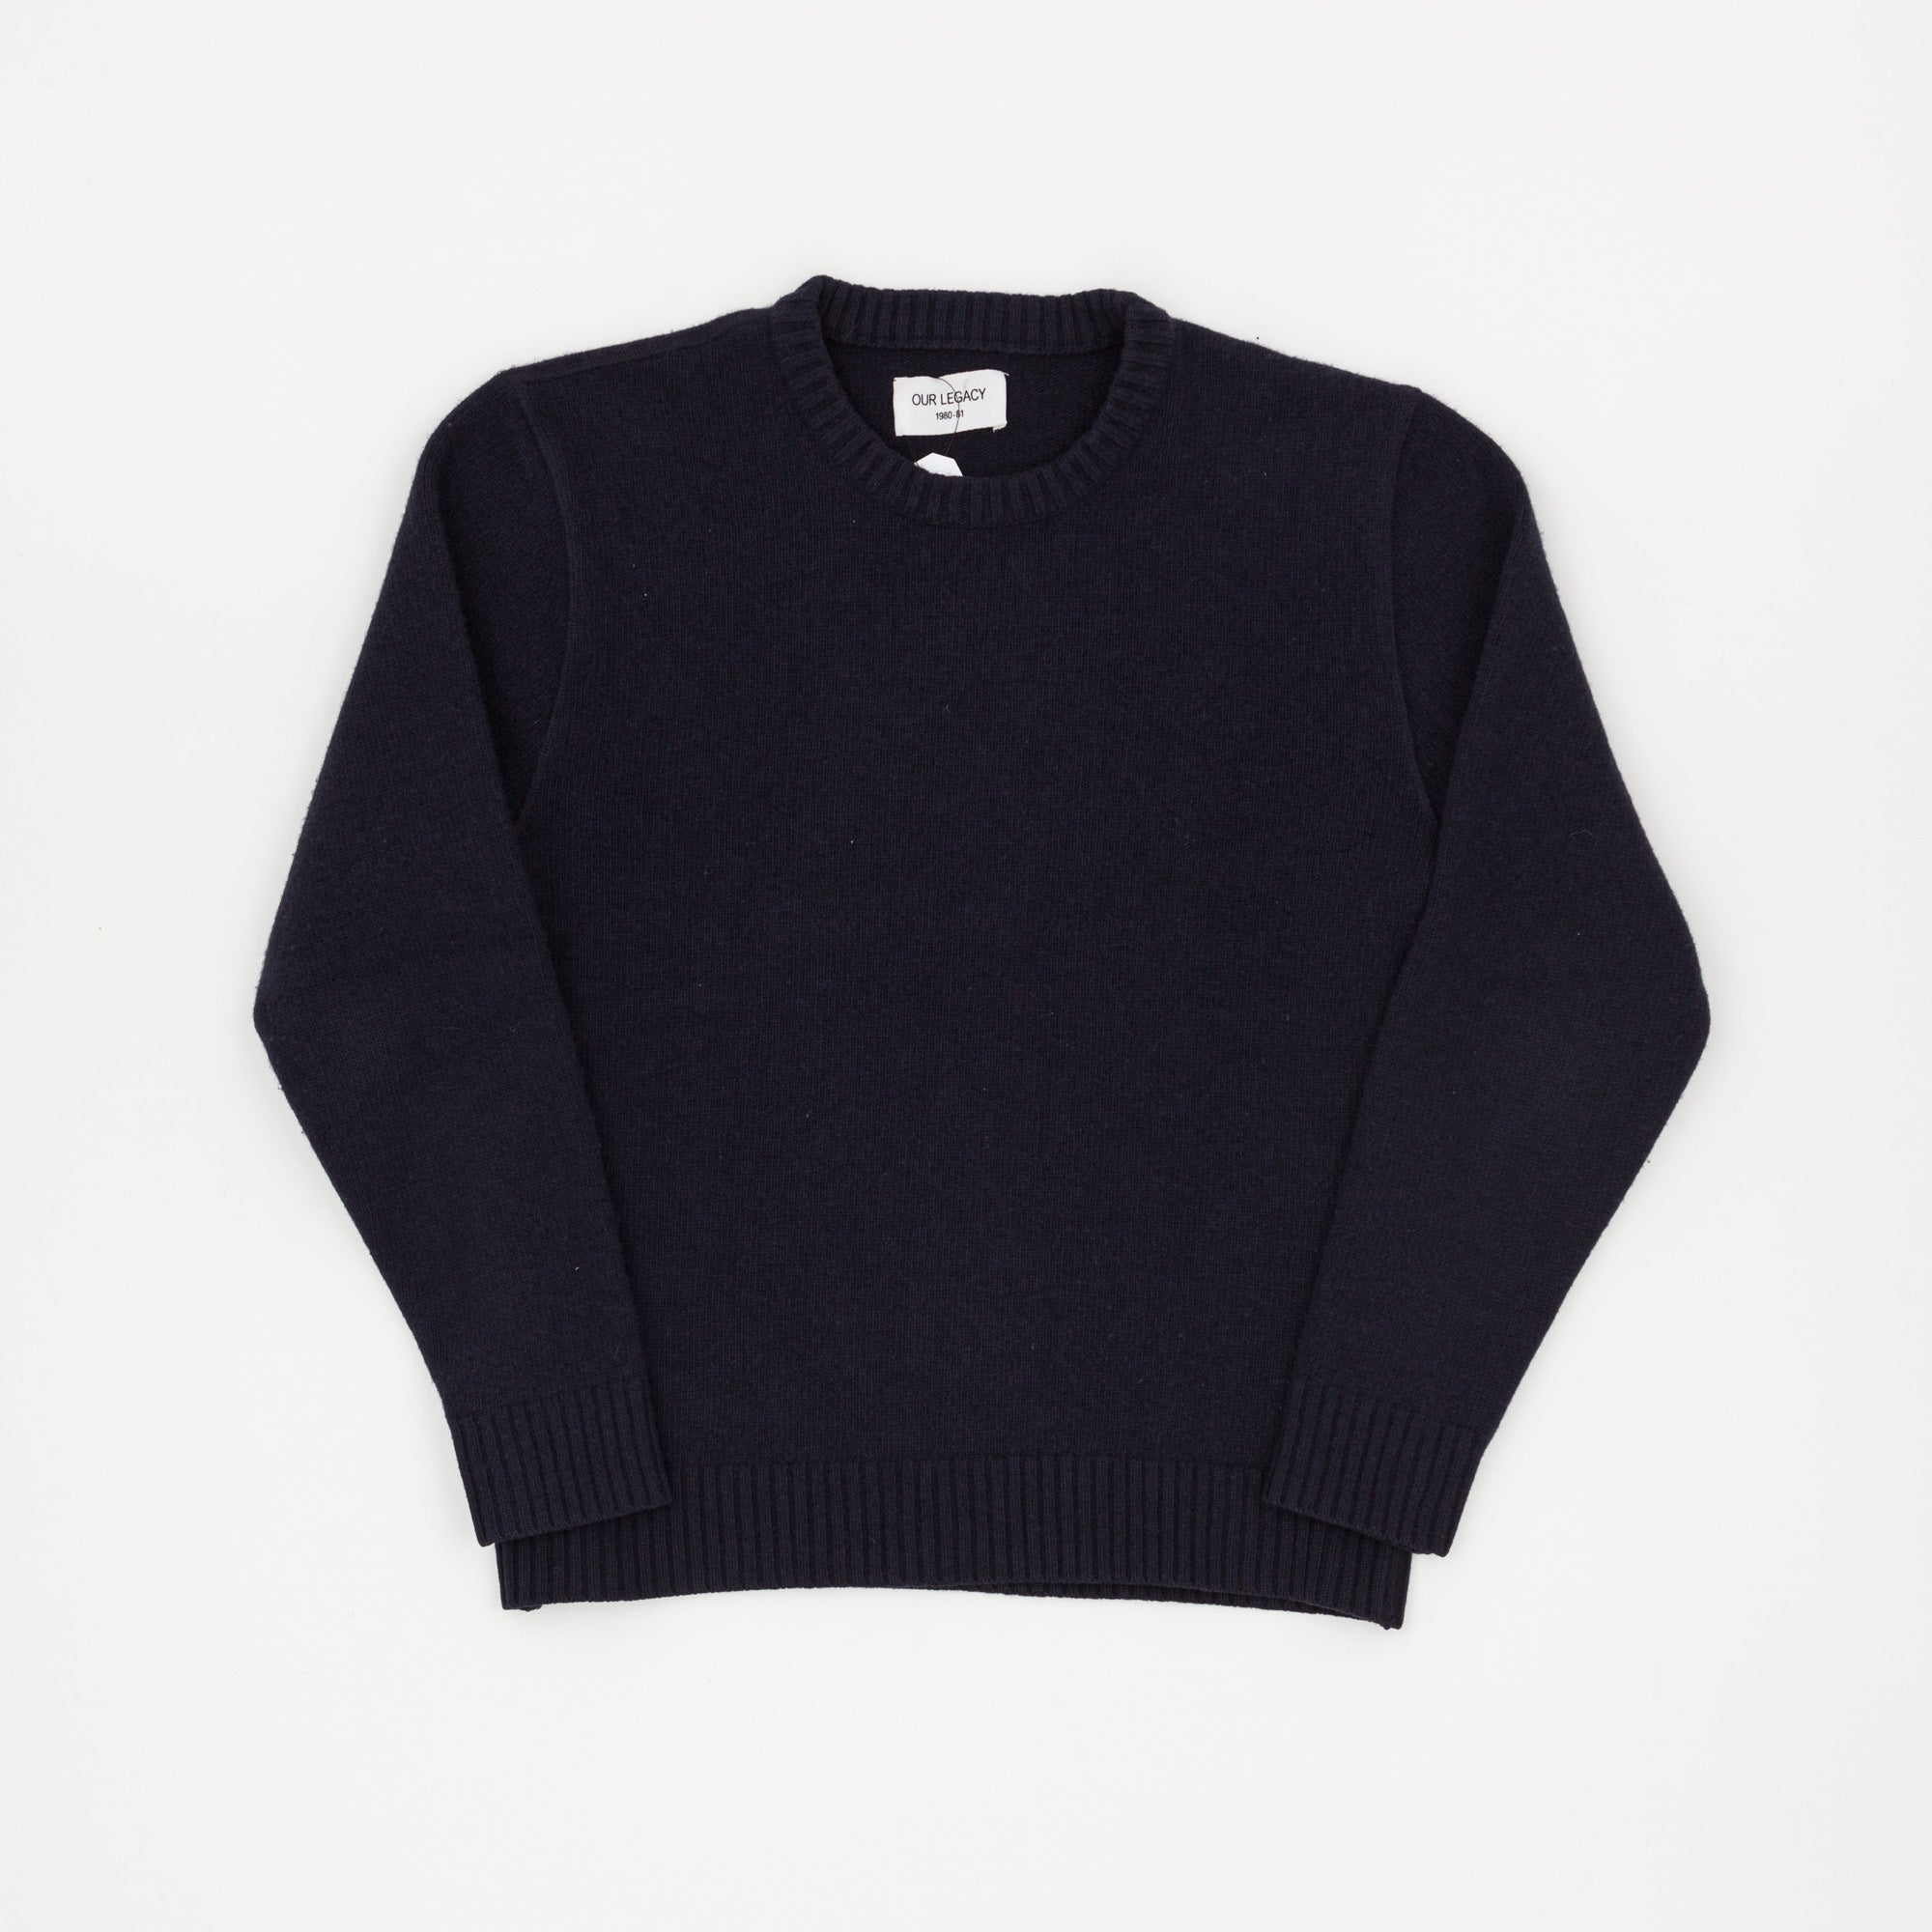 Our legacy Crewneck Boiled Wool Sweater